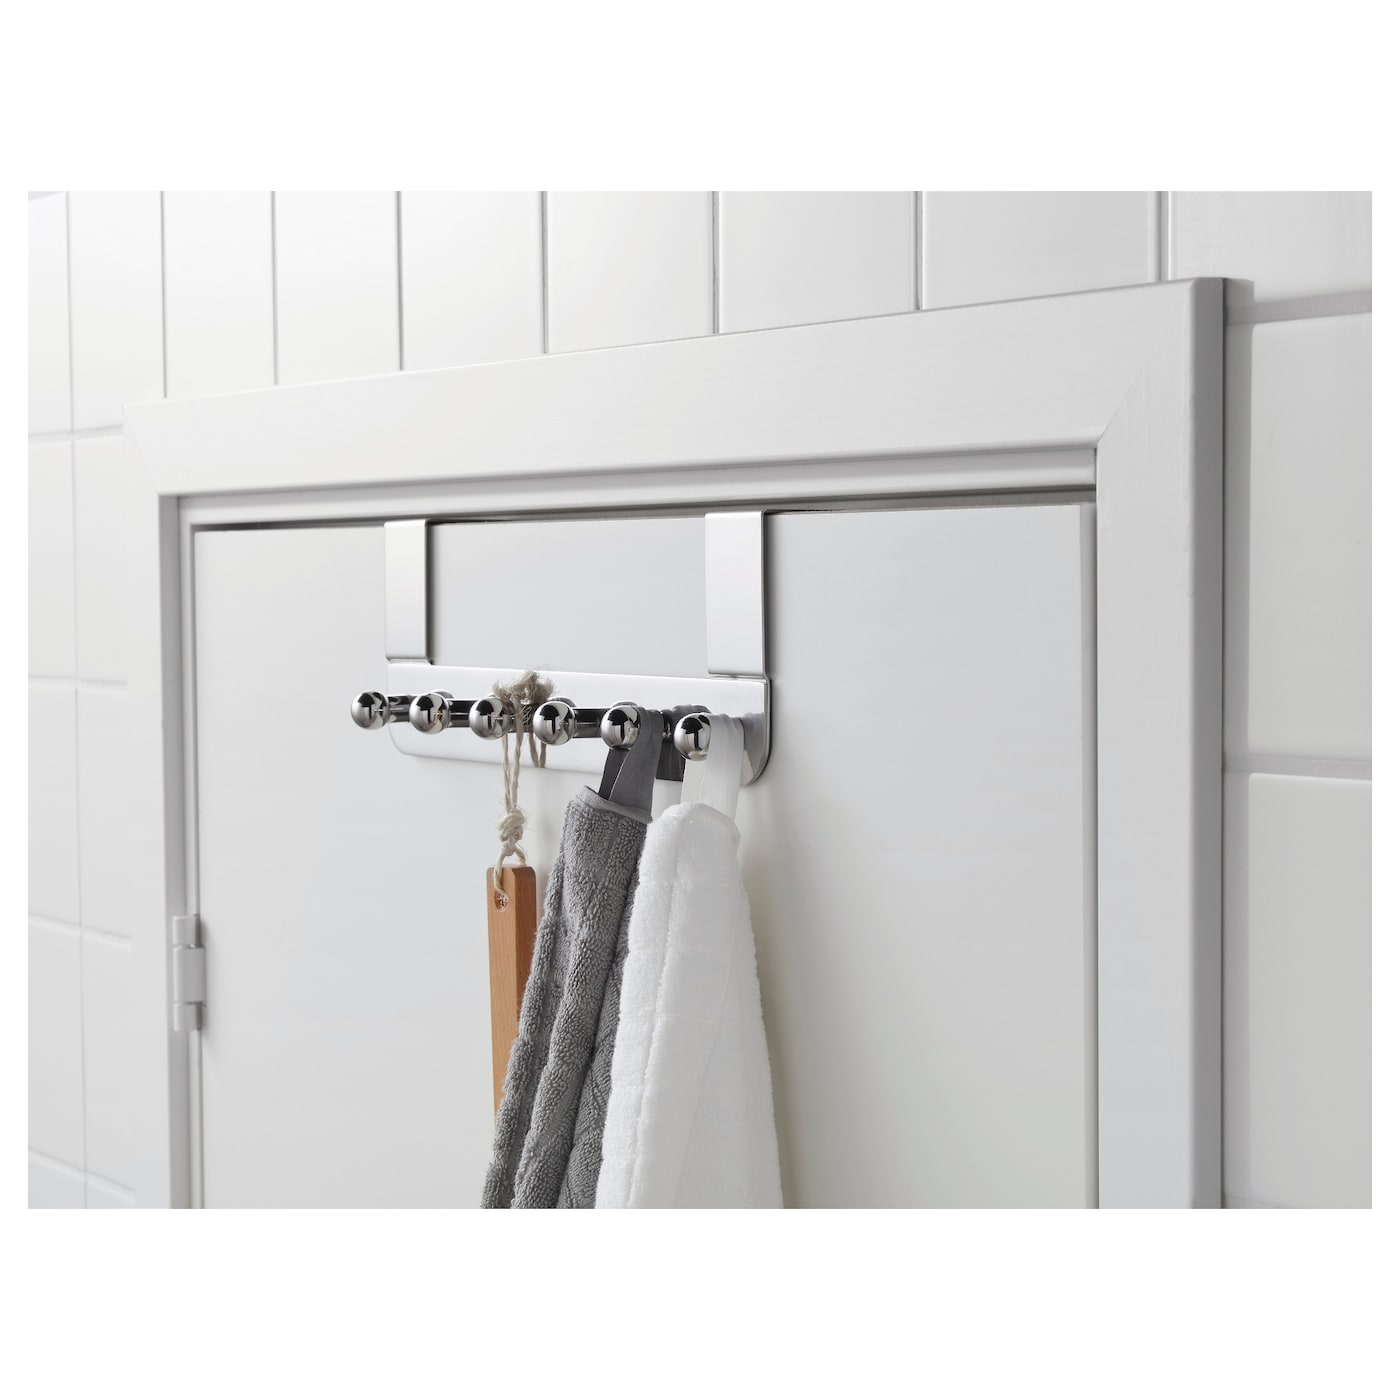 IKEA VOXNAN hanger for door Covered back prevents scratching of door.